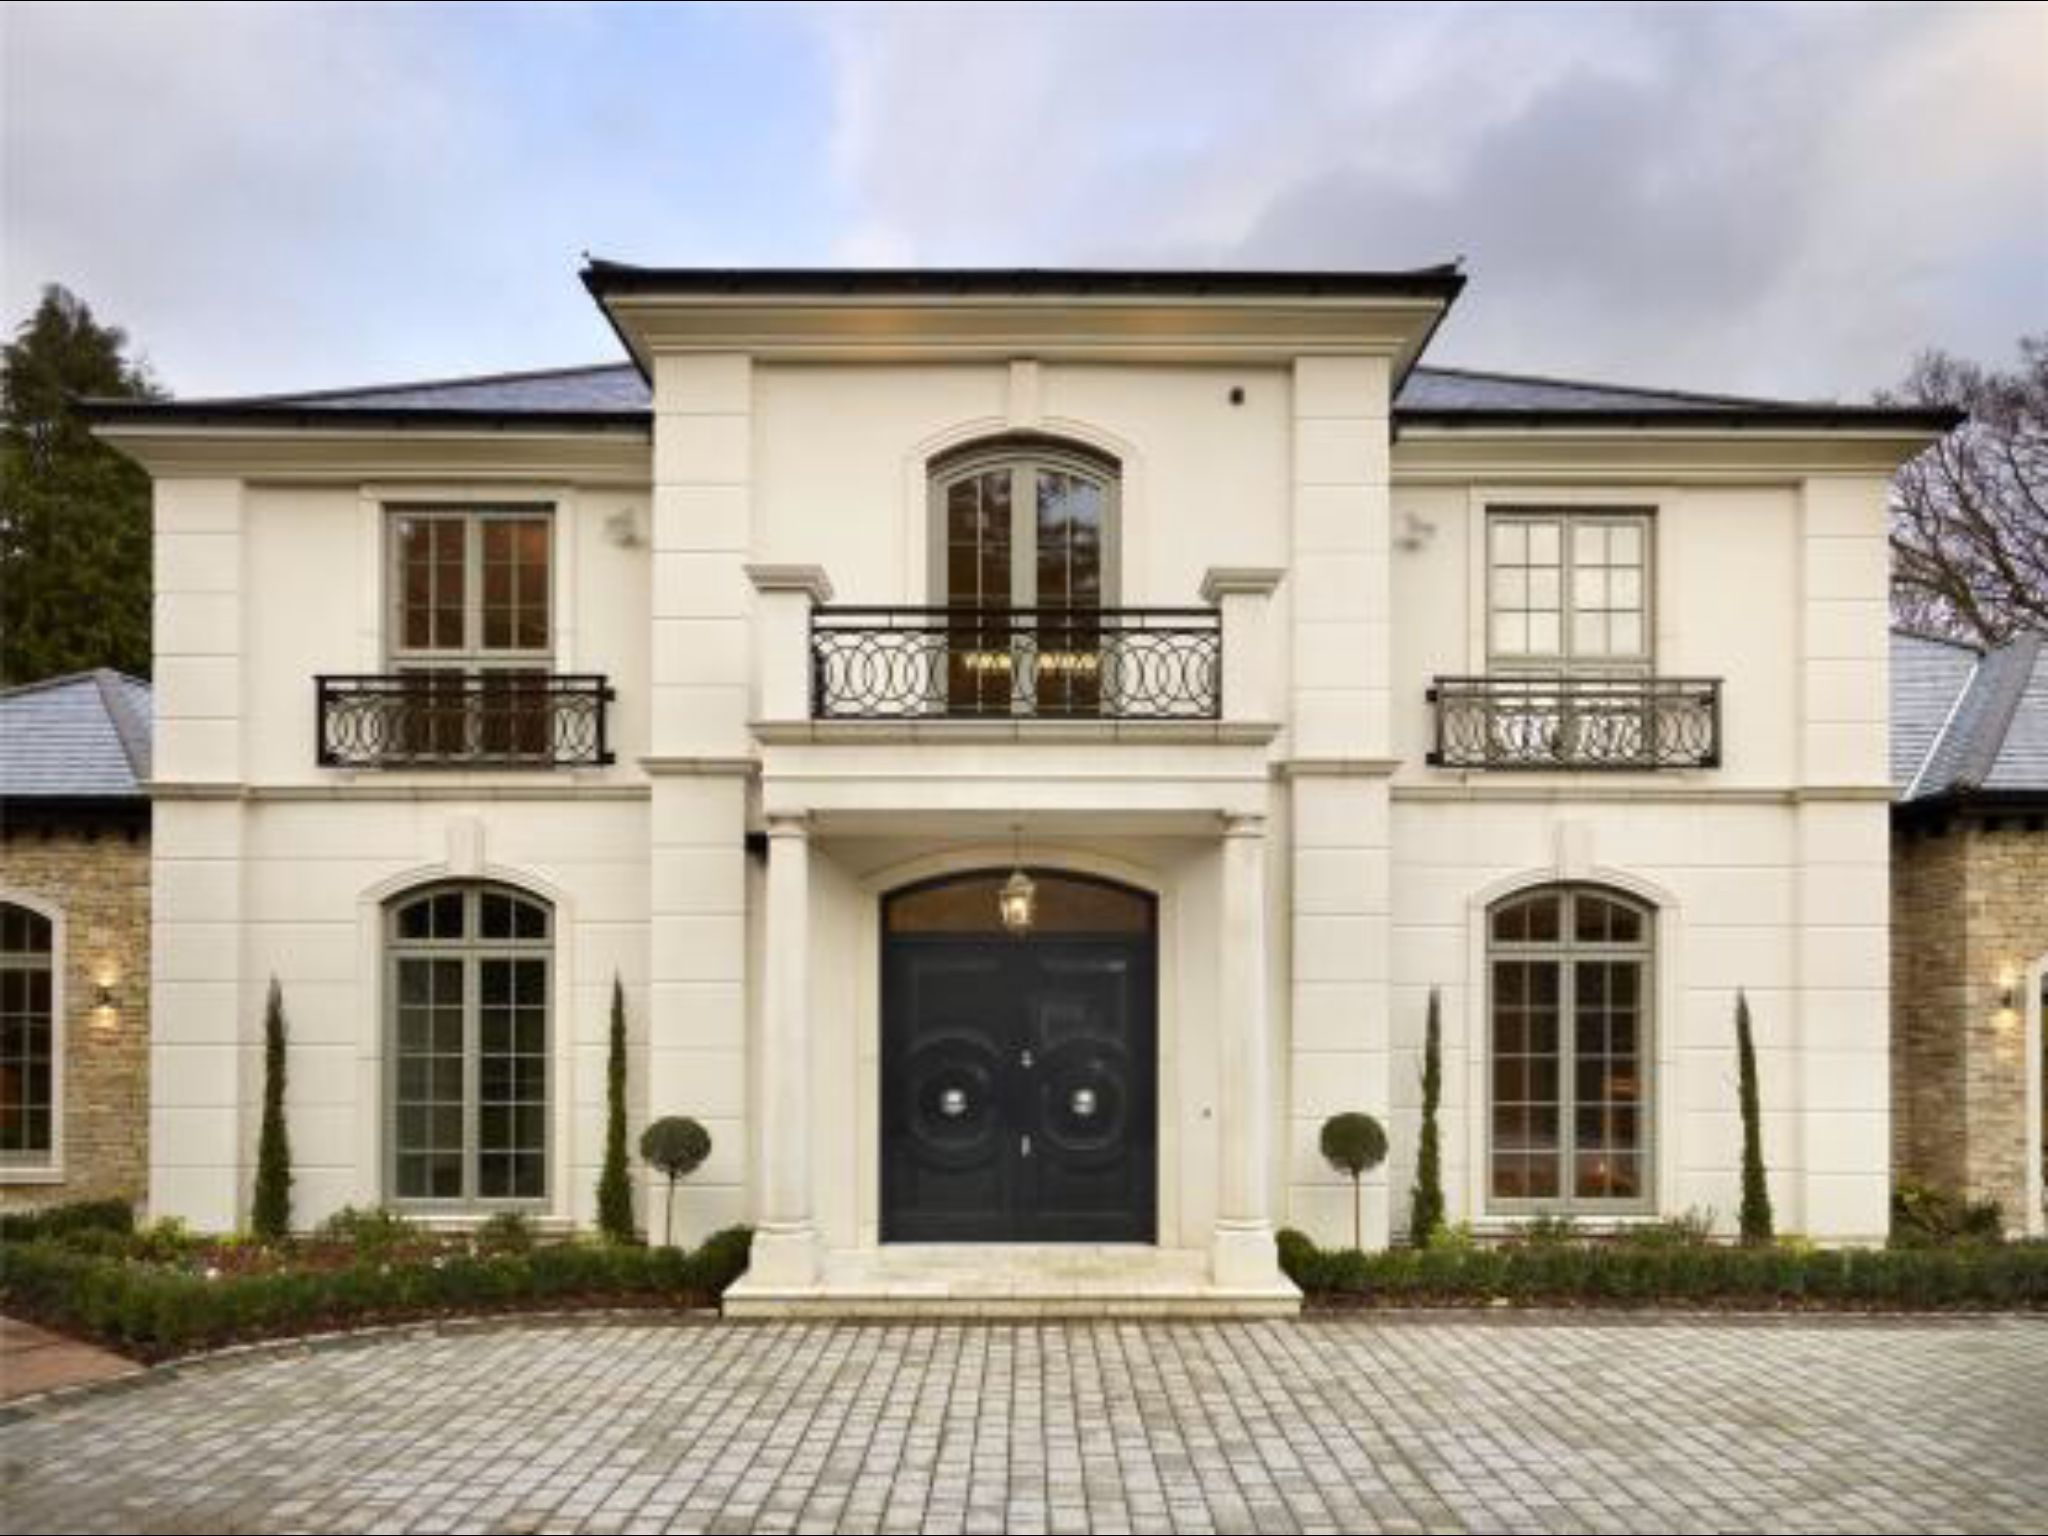 5 Bedroom Detached House For Sale In Eaton Park Road Cobham Surrey